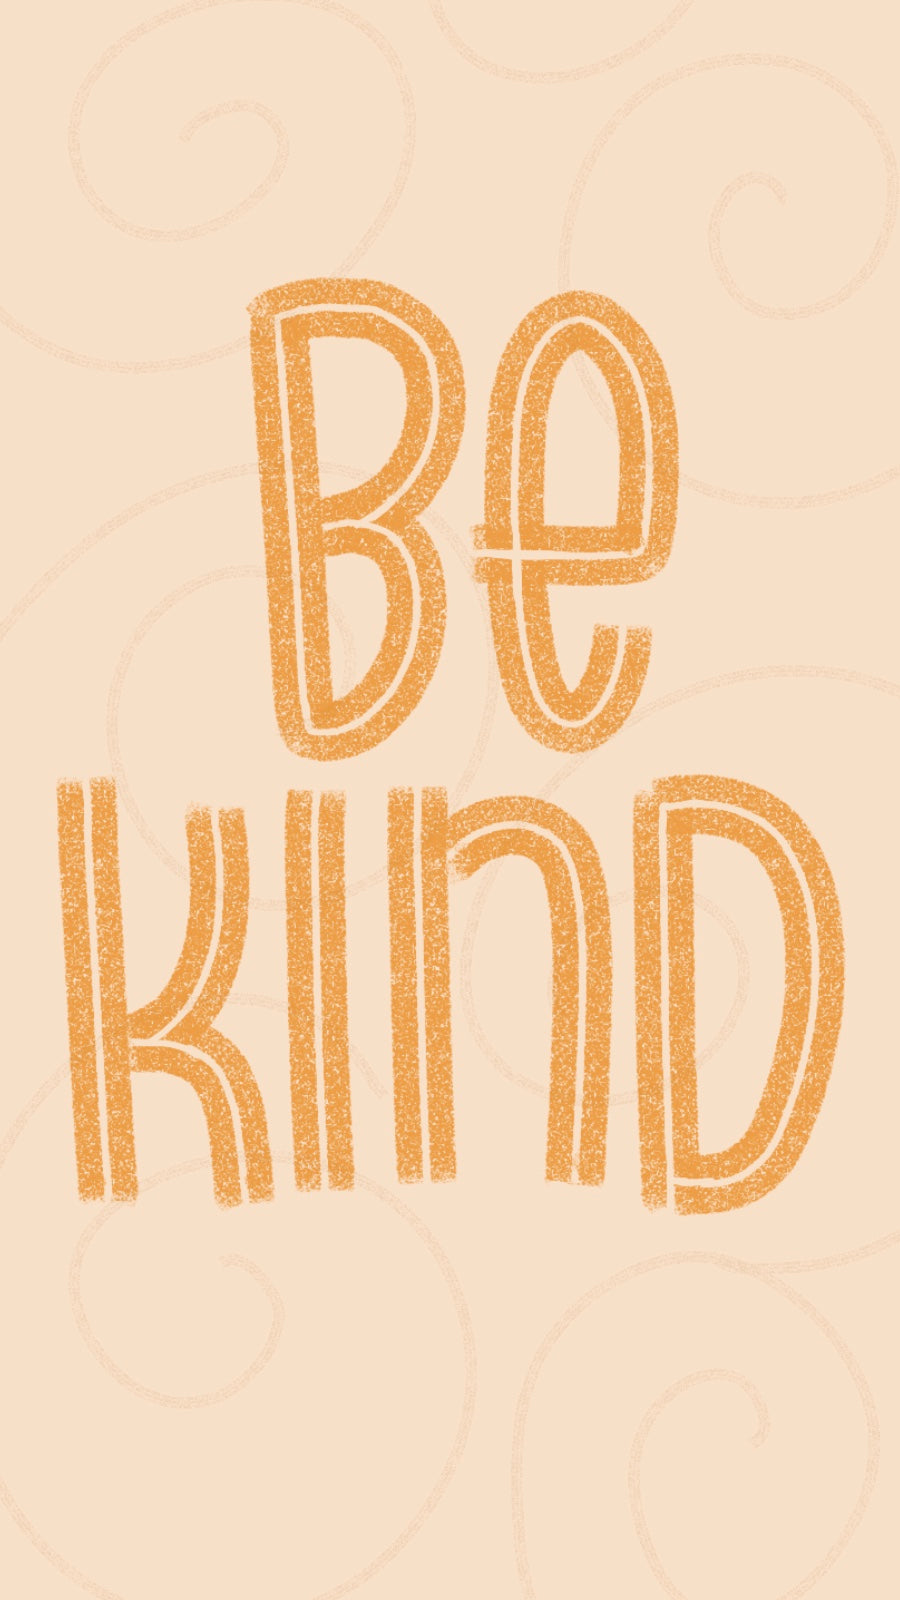 Yellow Be Kind Design for Phone Wallpaper